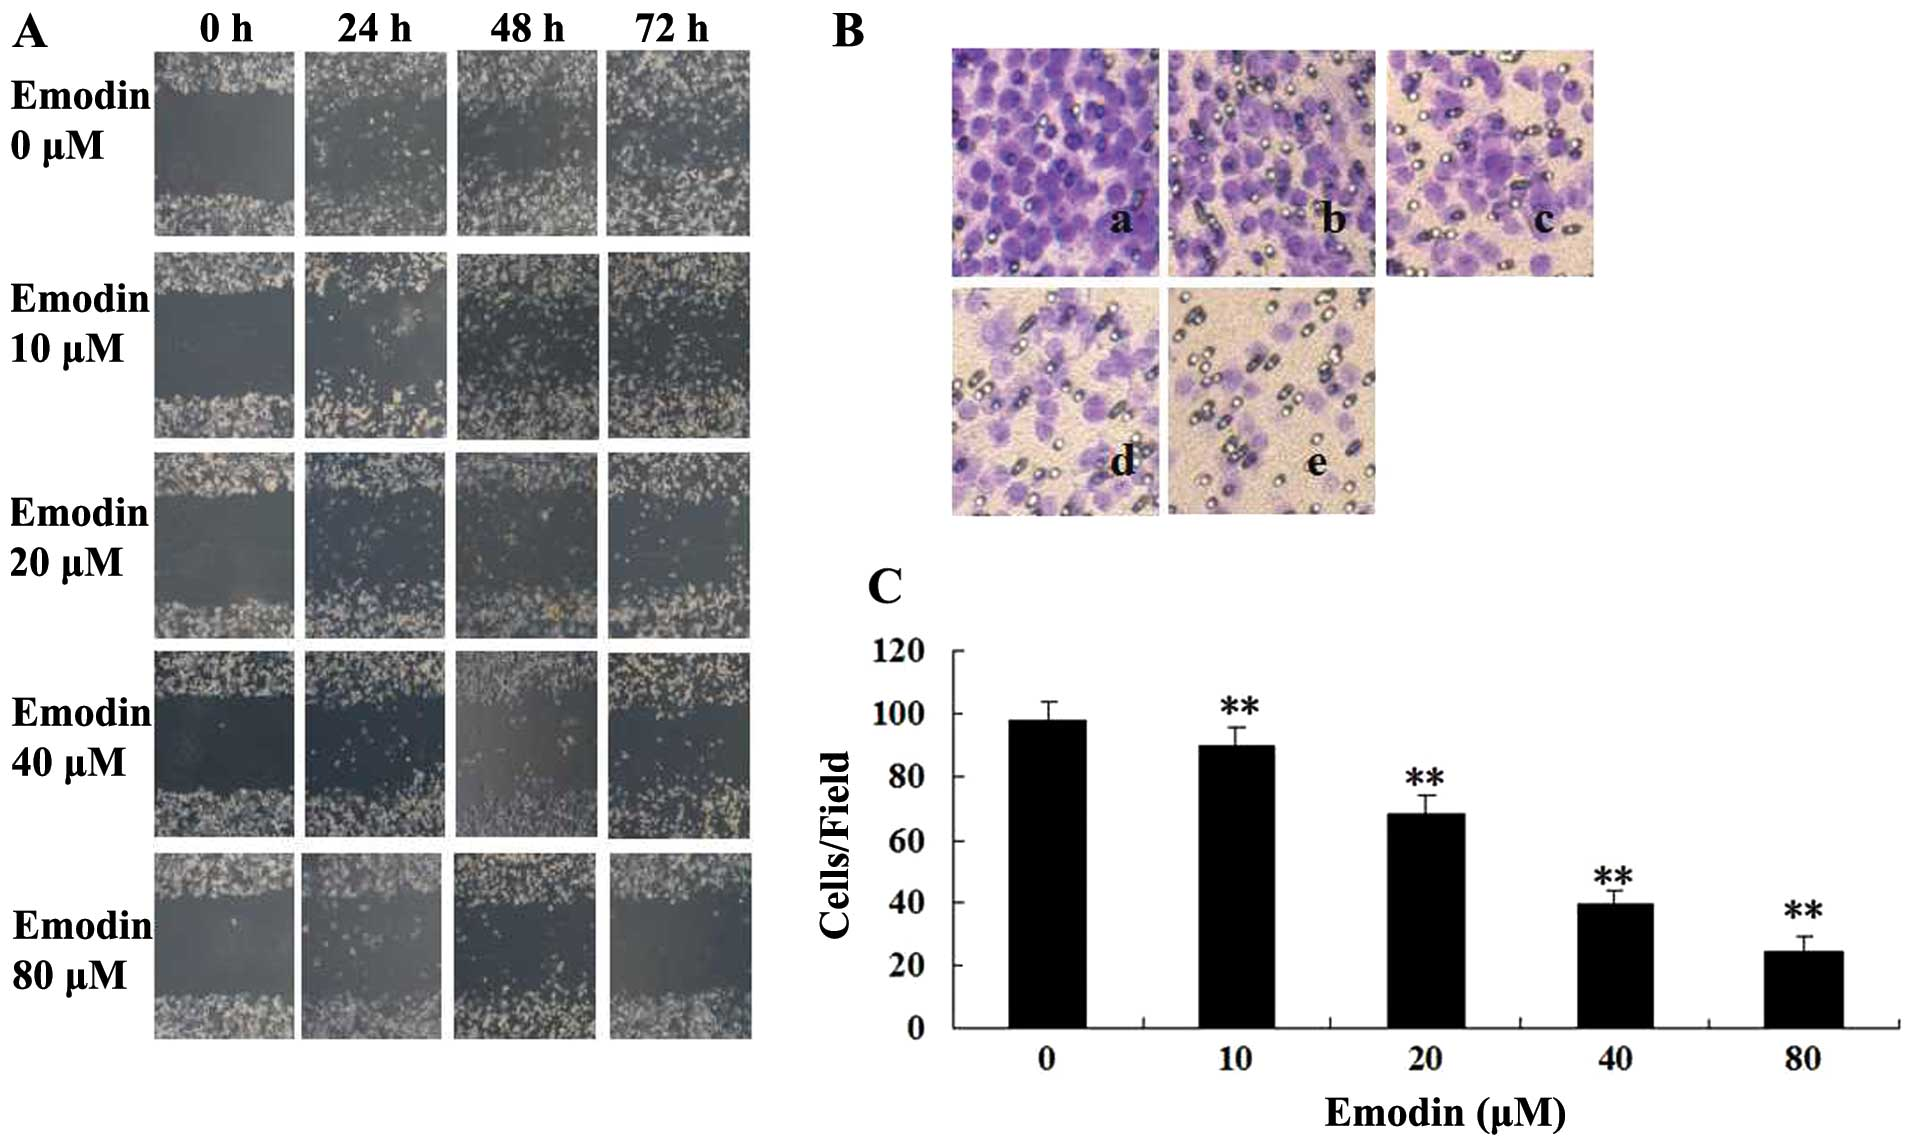 MDA MB 231 cells were treated with a 0 b 10 c 20 d 40 or e 80 μM of emodin for 24 h a Blank no added cells C Percent of cell migration